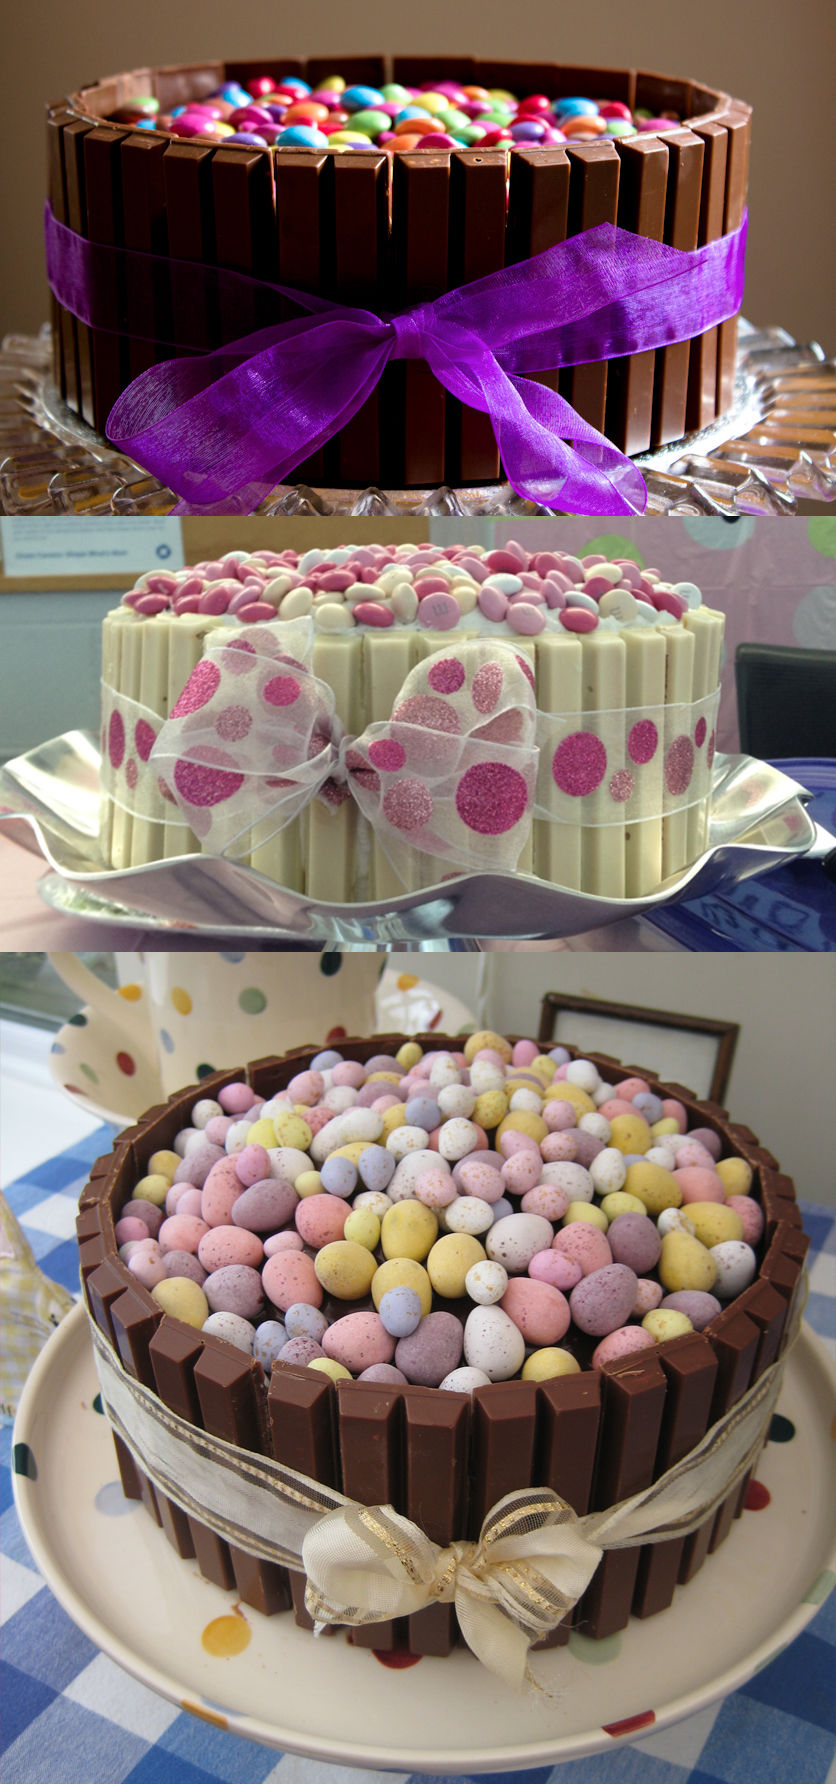 Decorating Cake With Kitkat : Easter Kit Kat Cakes Pictures, Photos, and Images for ...